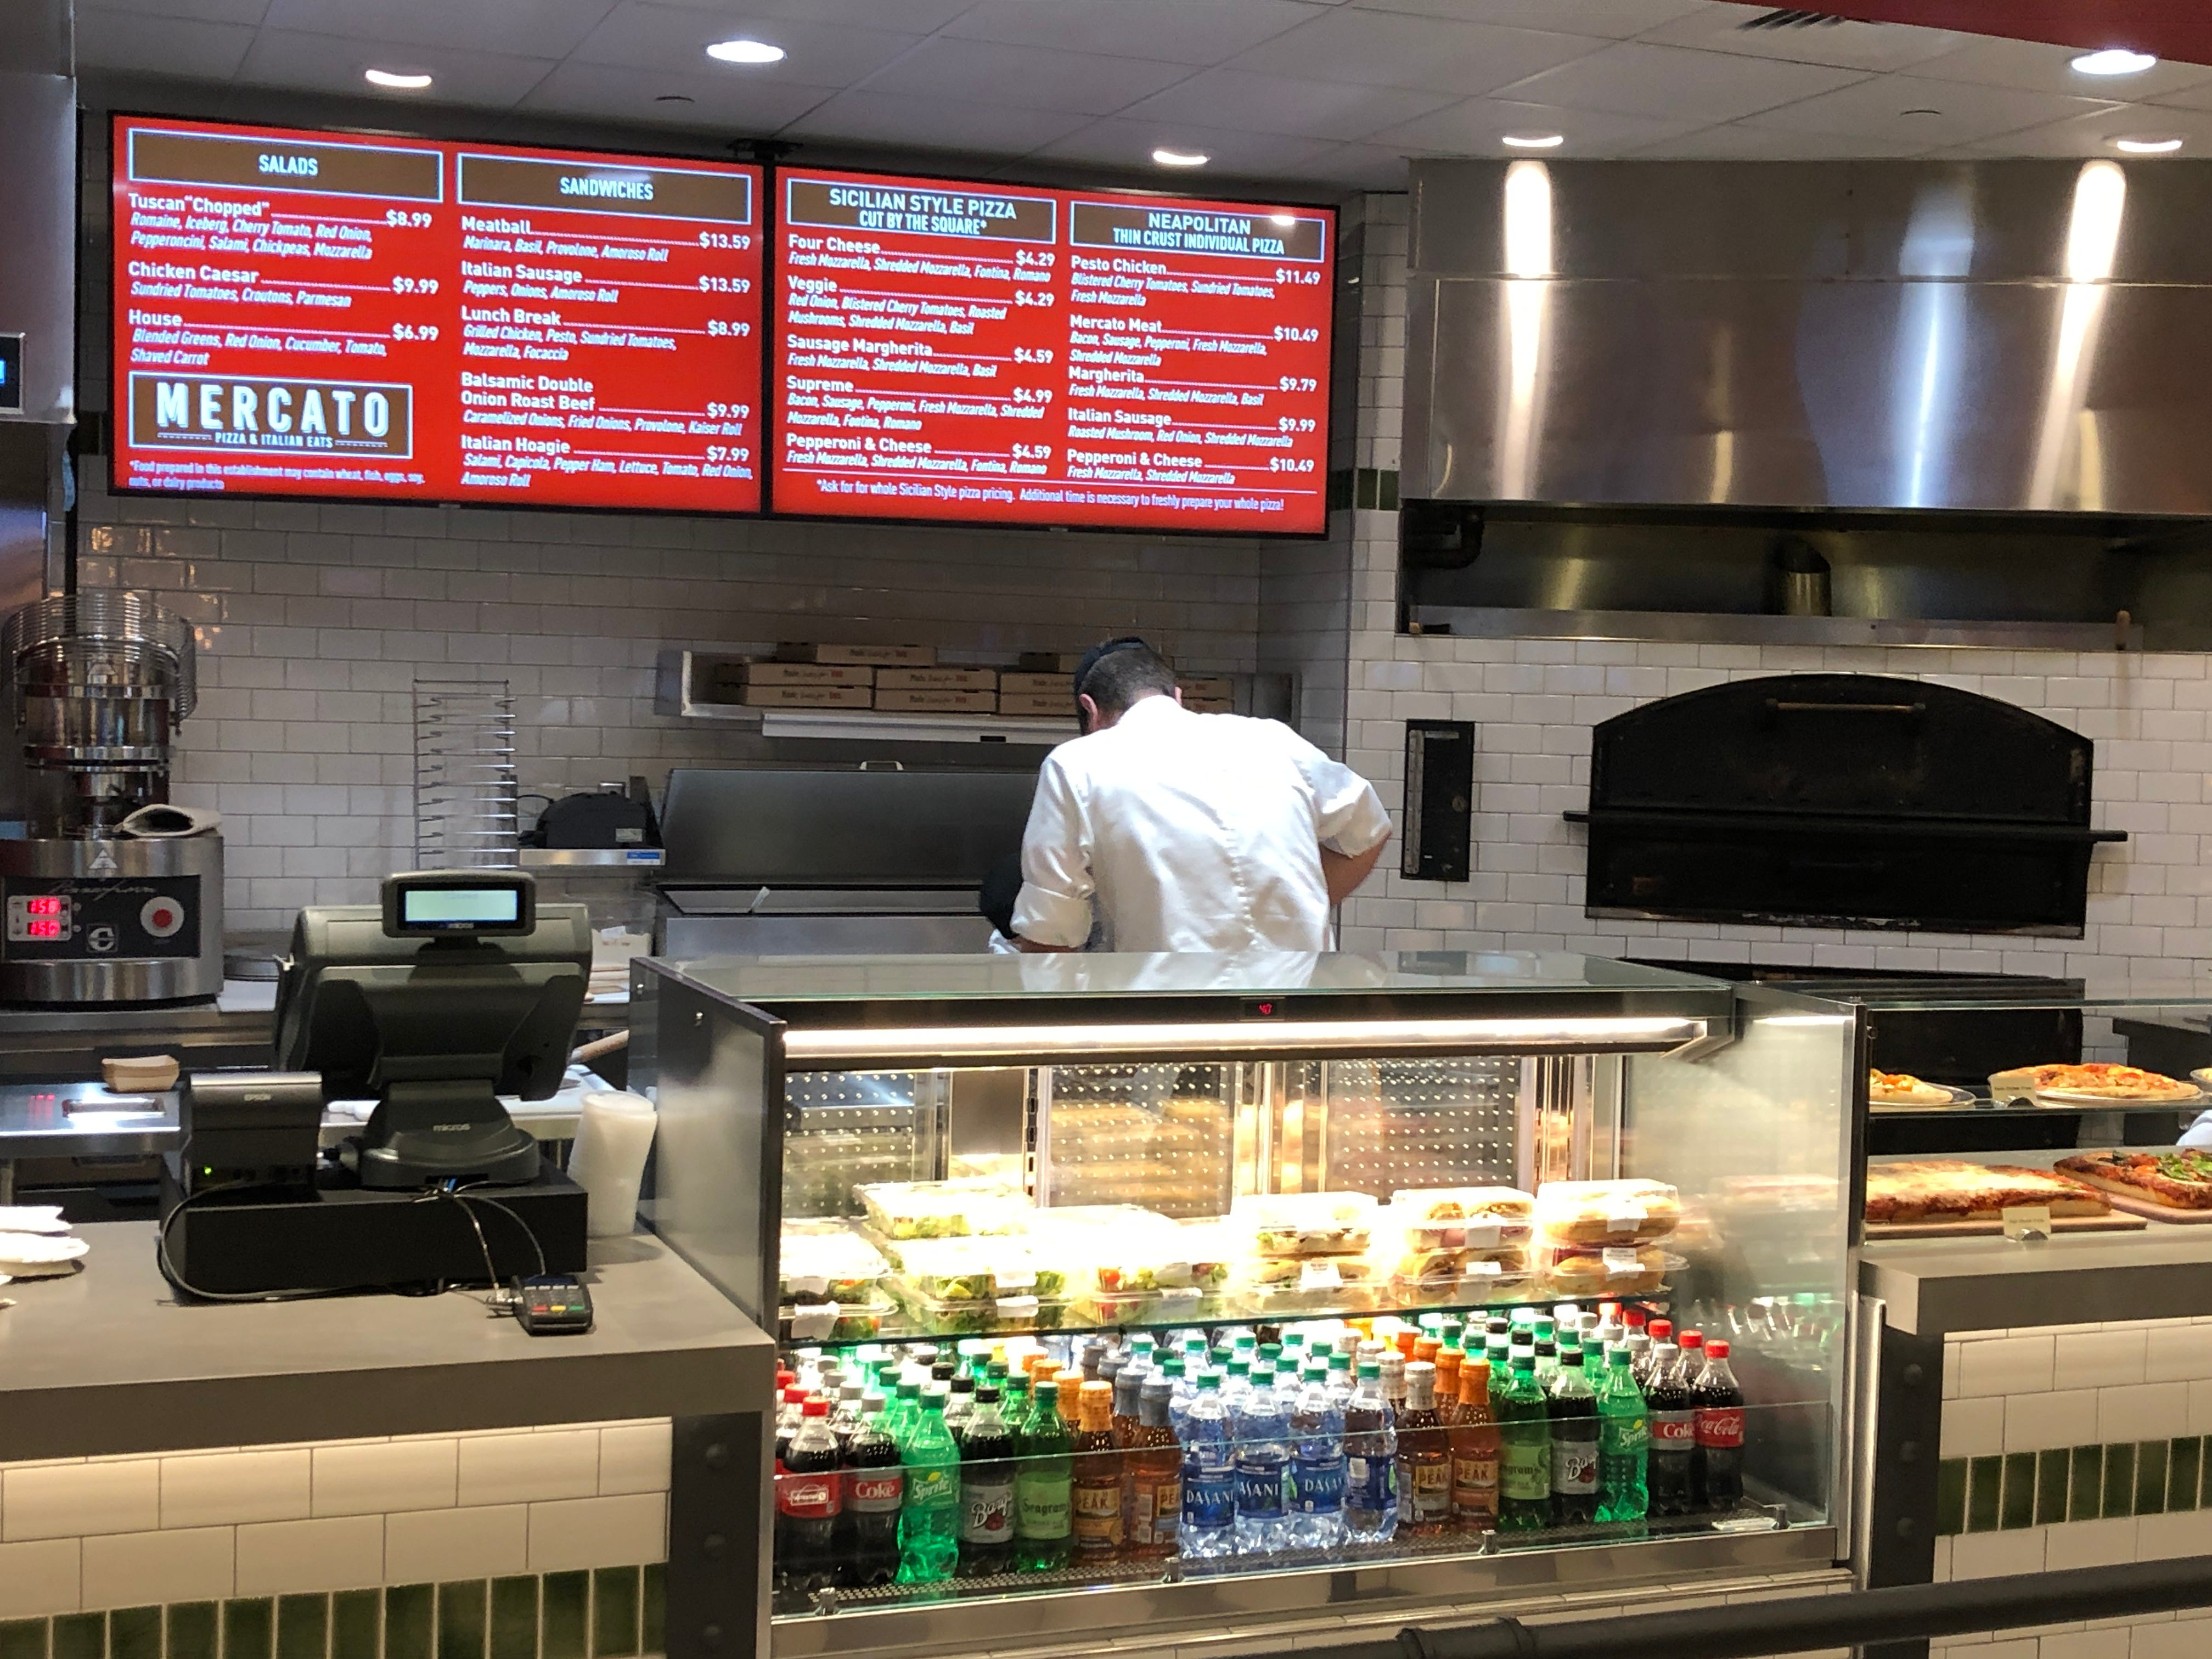 The counter and brick oven at Mercato, where you can get authentic Italian food at Hollywood Casino.